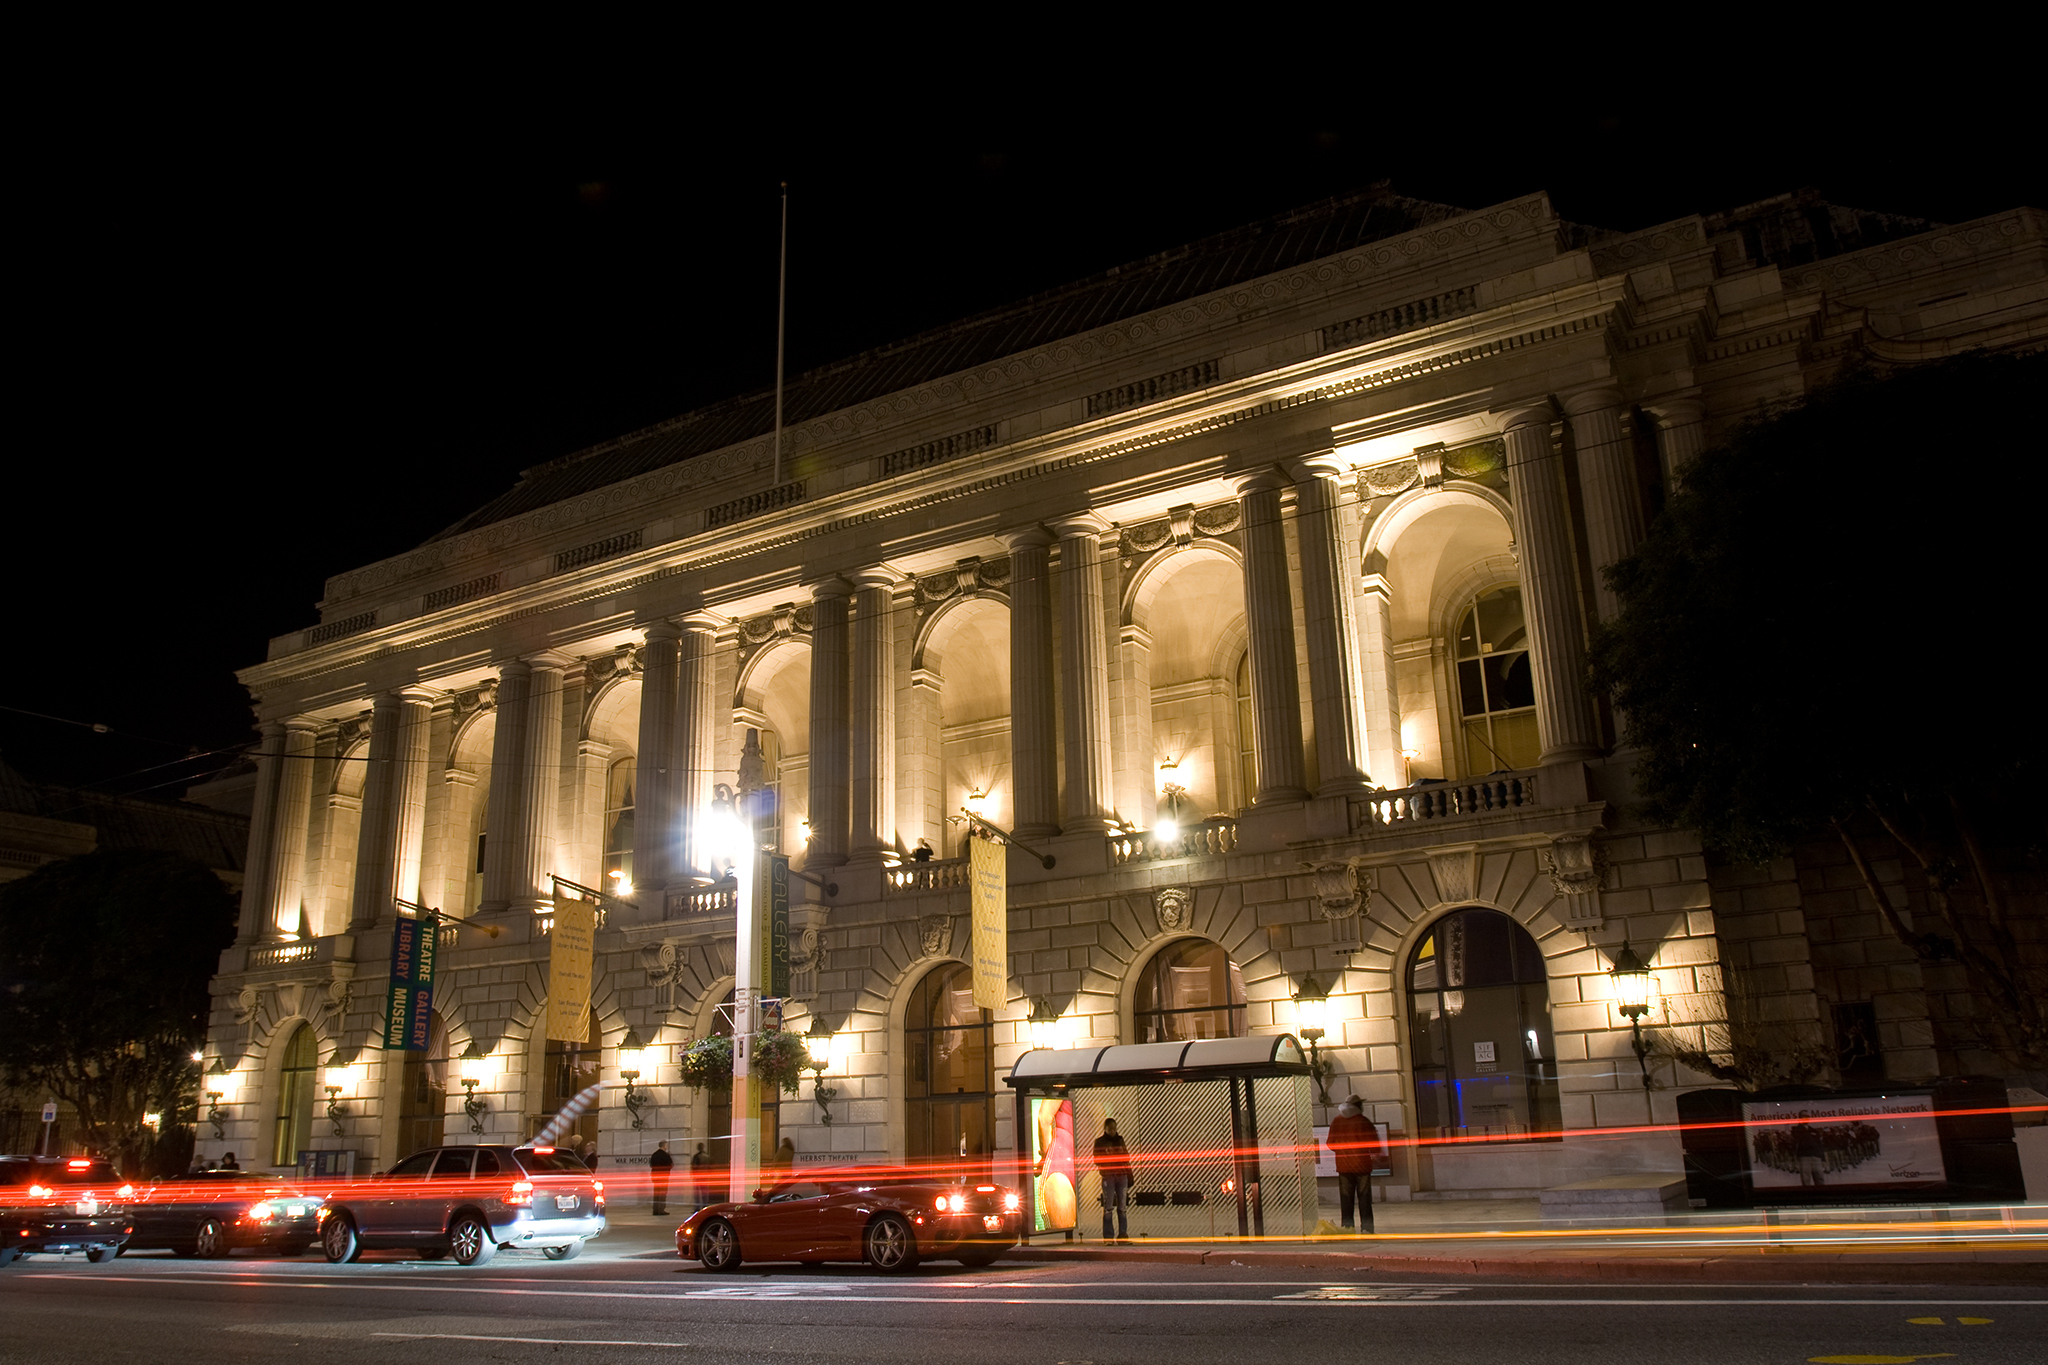 Take a tour of the War Memorial Opera House